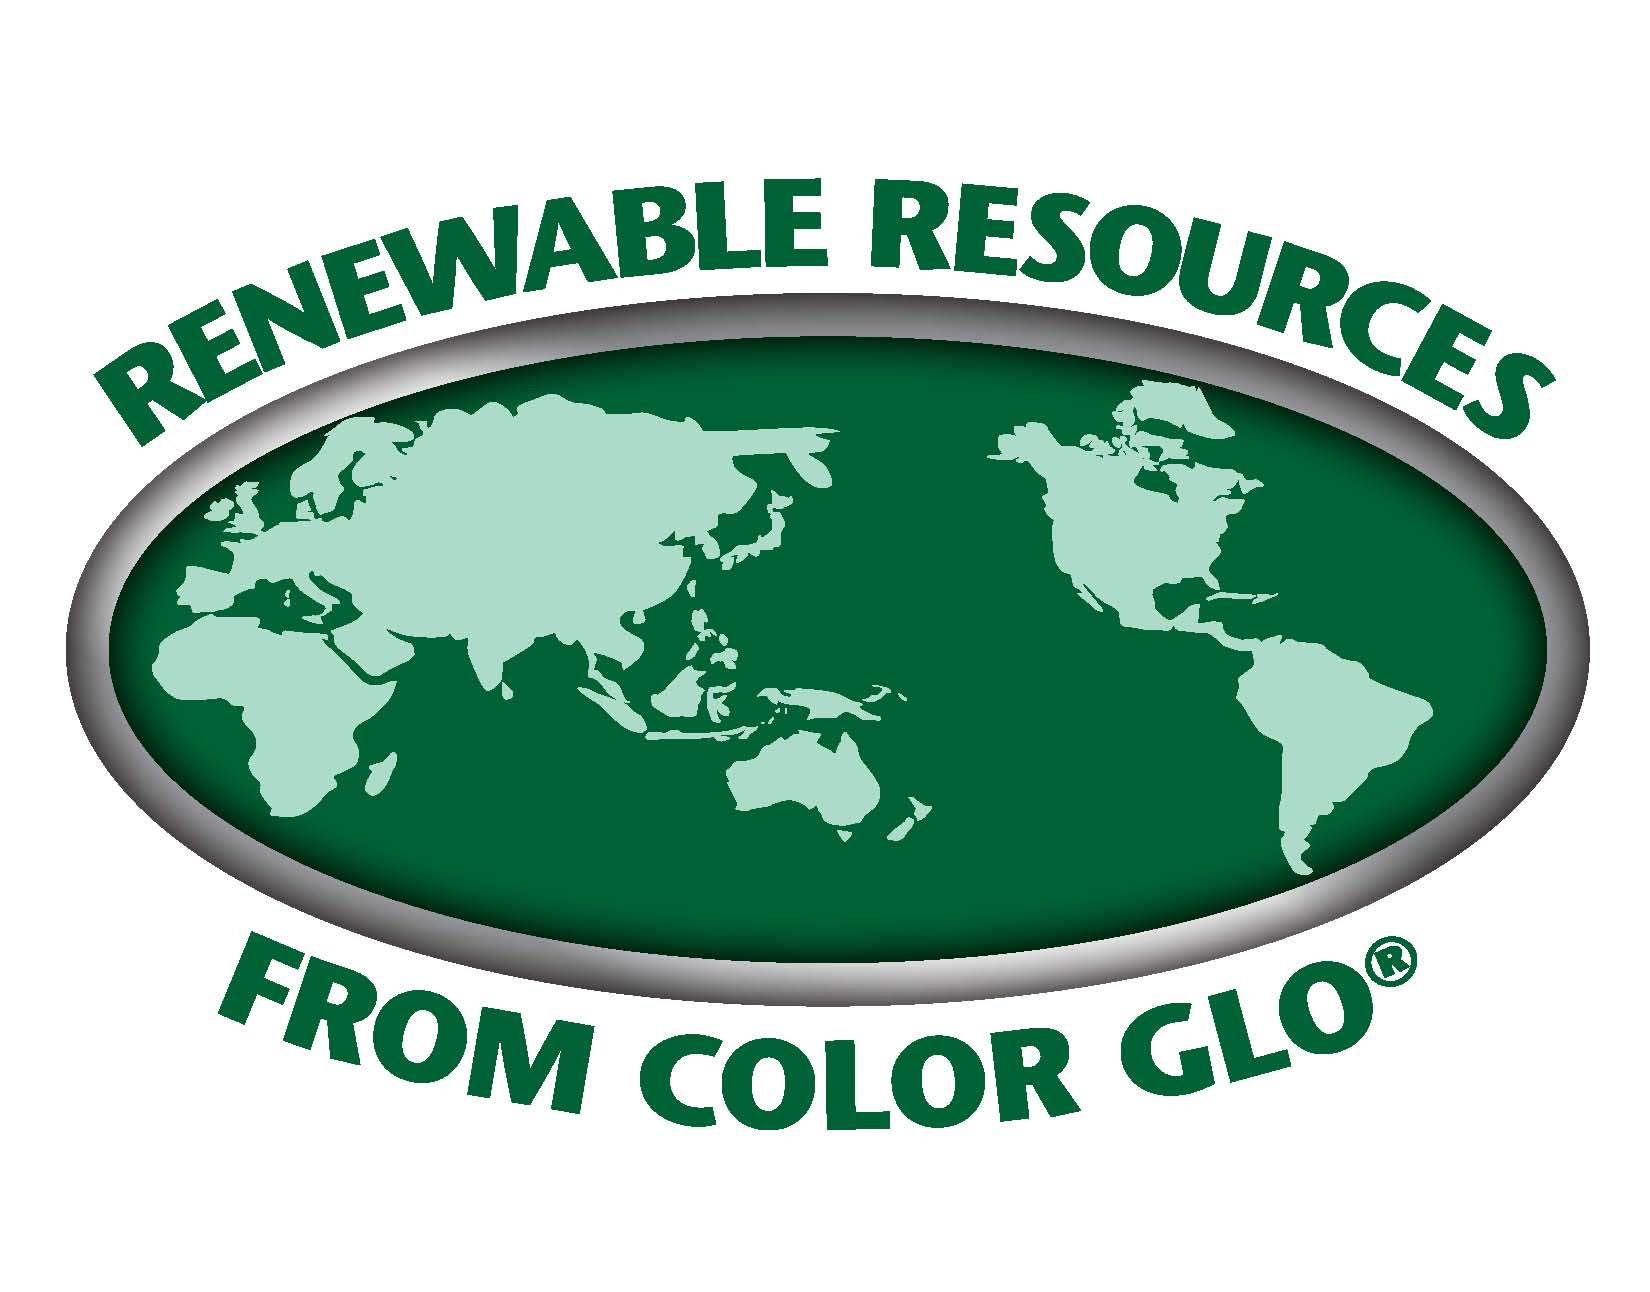 Color Glo International. Renewable Resources.